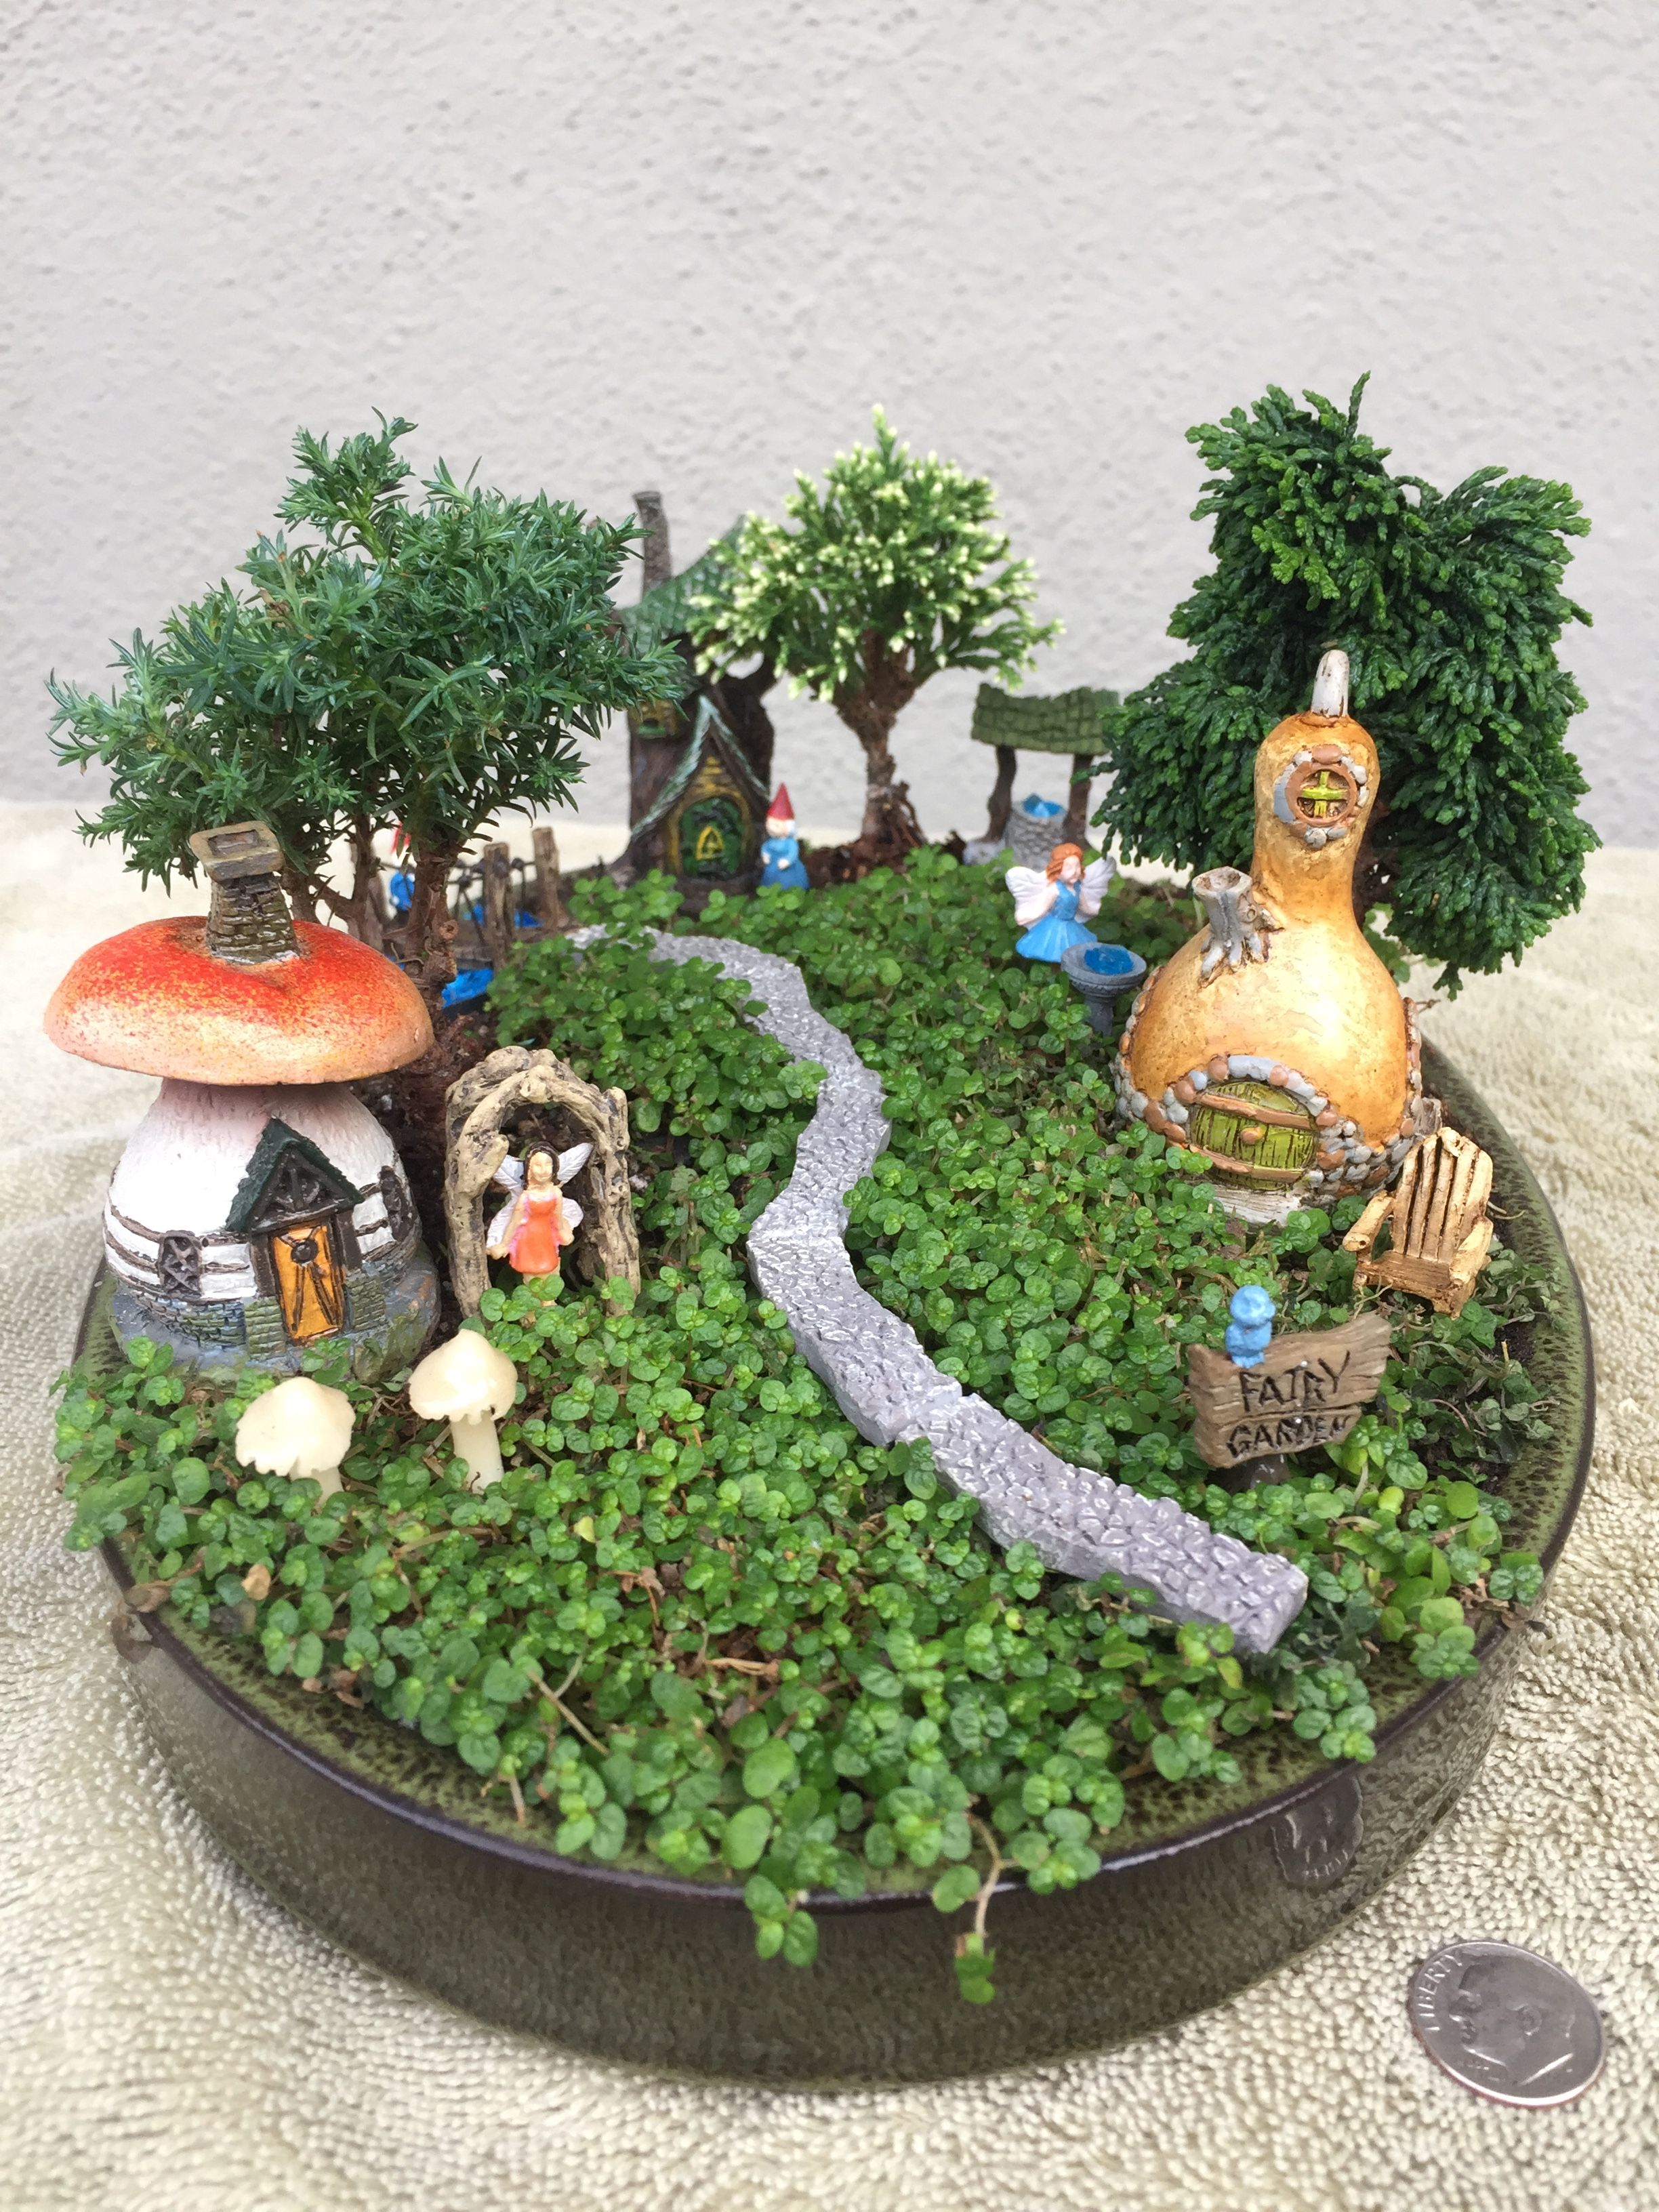 Miniature Fairy Garden On The Micro Side Is A Micro Mini Village Fairies And Gnomes Live Here The Micro Fairy Seen On The Left Is Walking From Her Ar Feeen